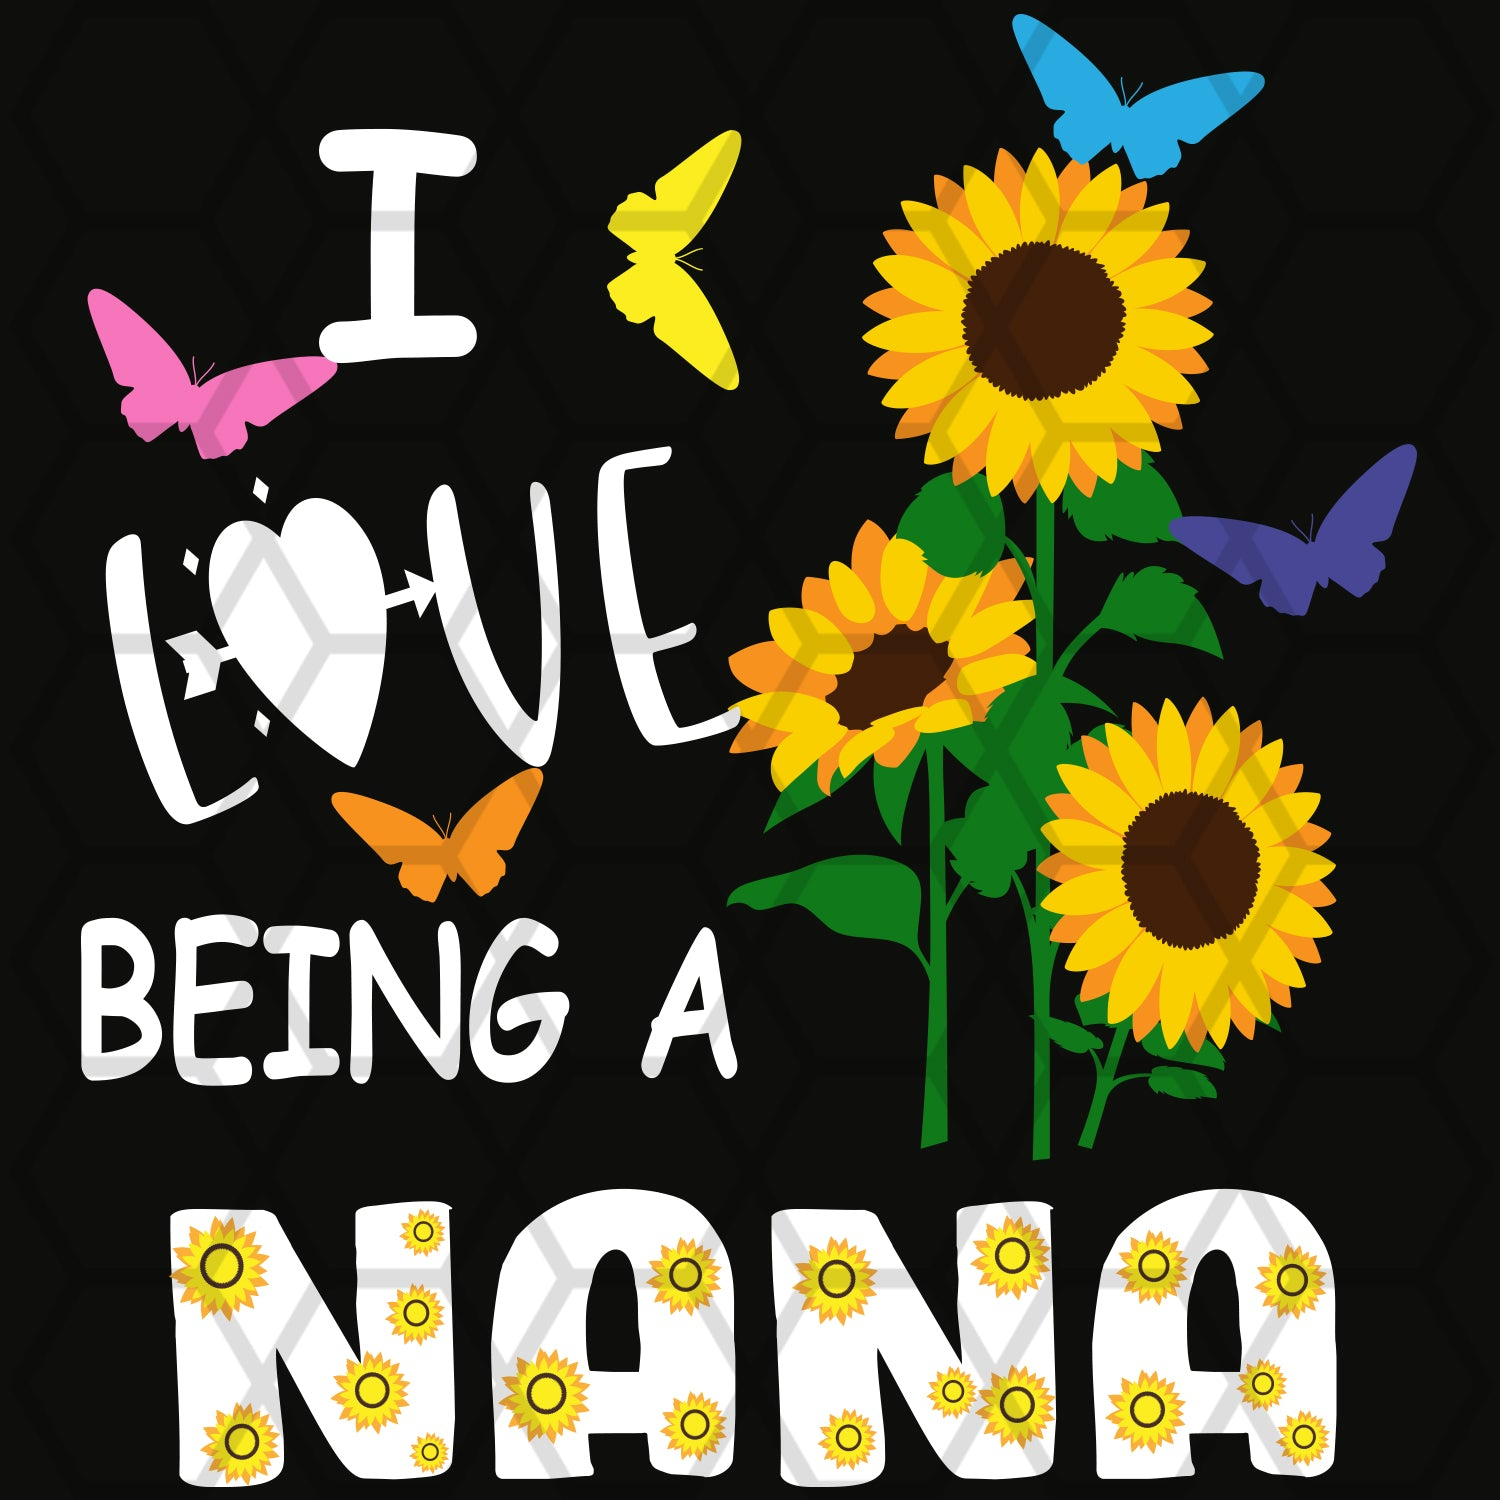 I love being a nana, nana svg, nana gift, nana shirt, nana life, gift for nana, best nana ever,family svg, family shirt,family gift,trending svg, Files For Silhouette, Files For Cricut, SVG, DXF, EPS, PNG, Instant Download